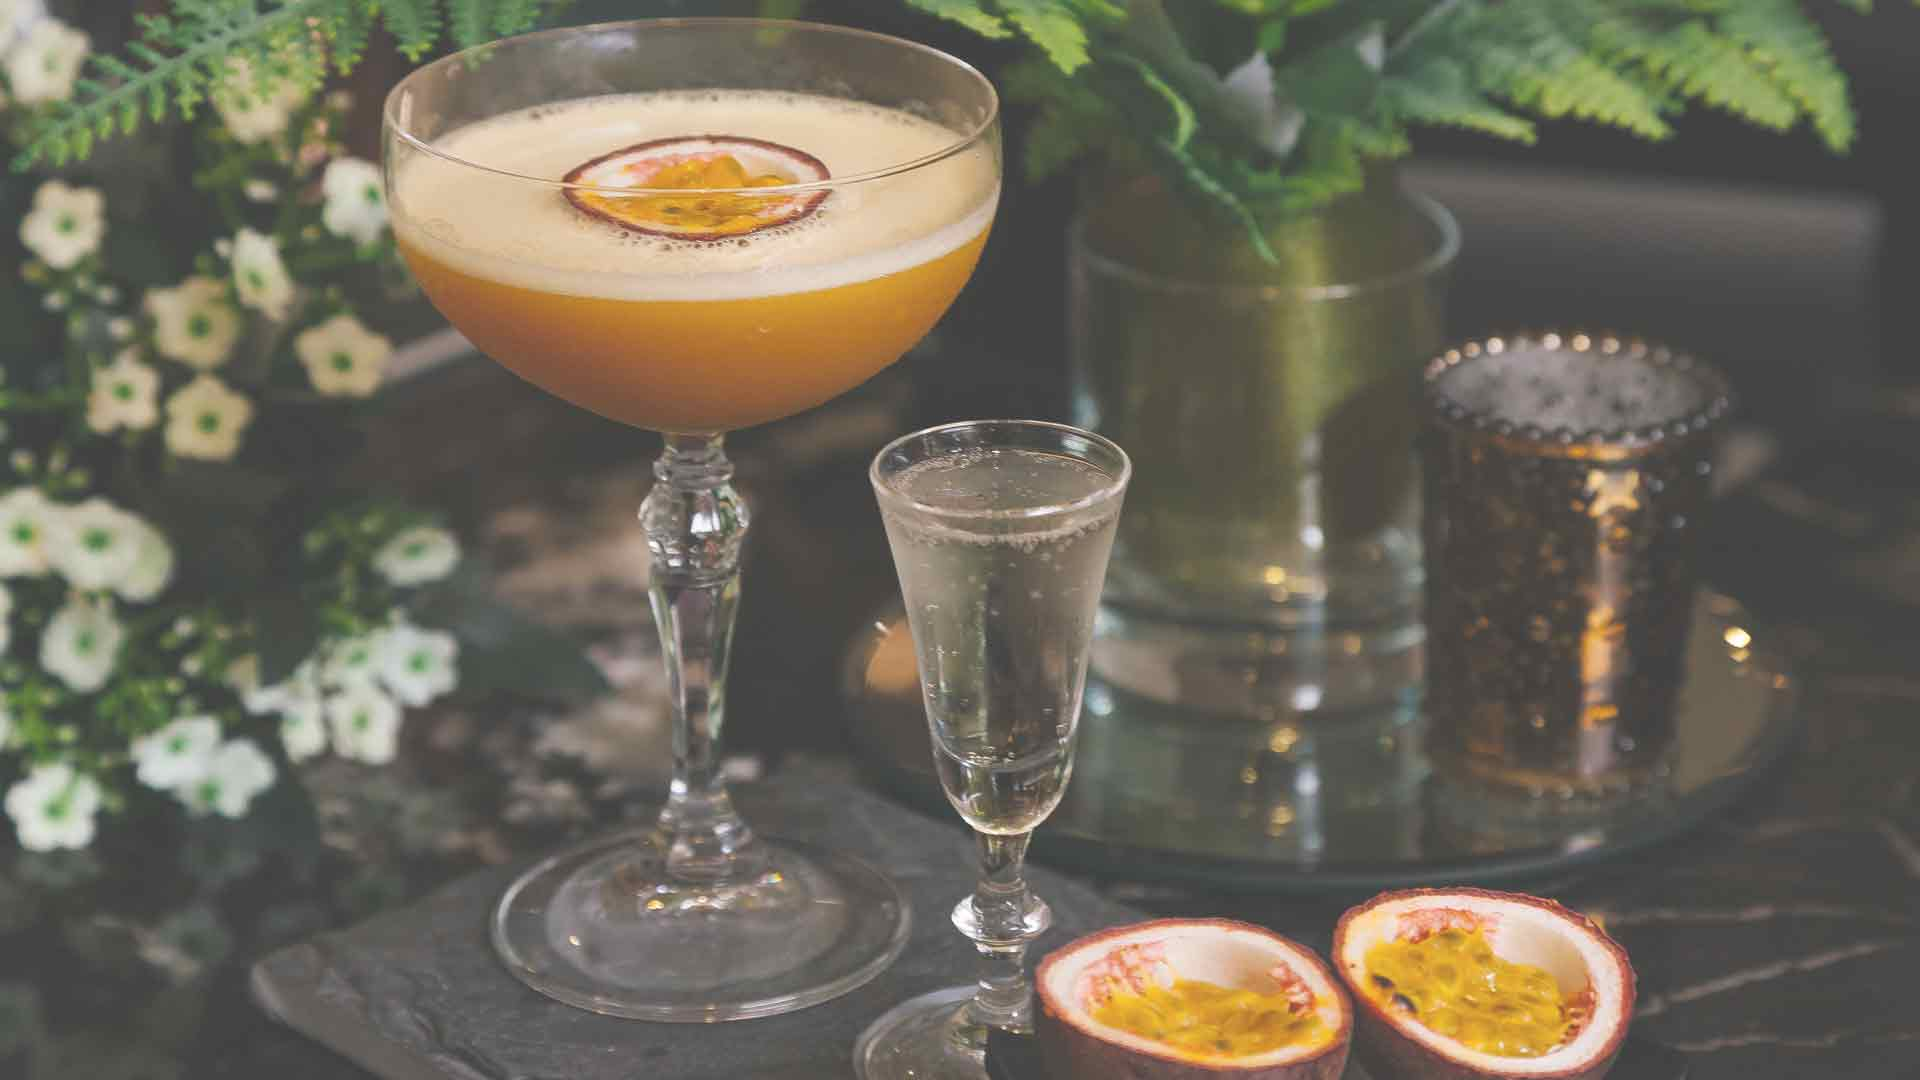 Our Passion Fruit Martini